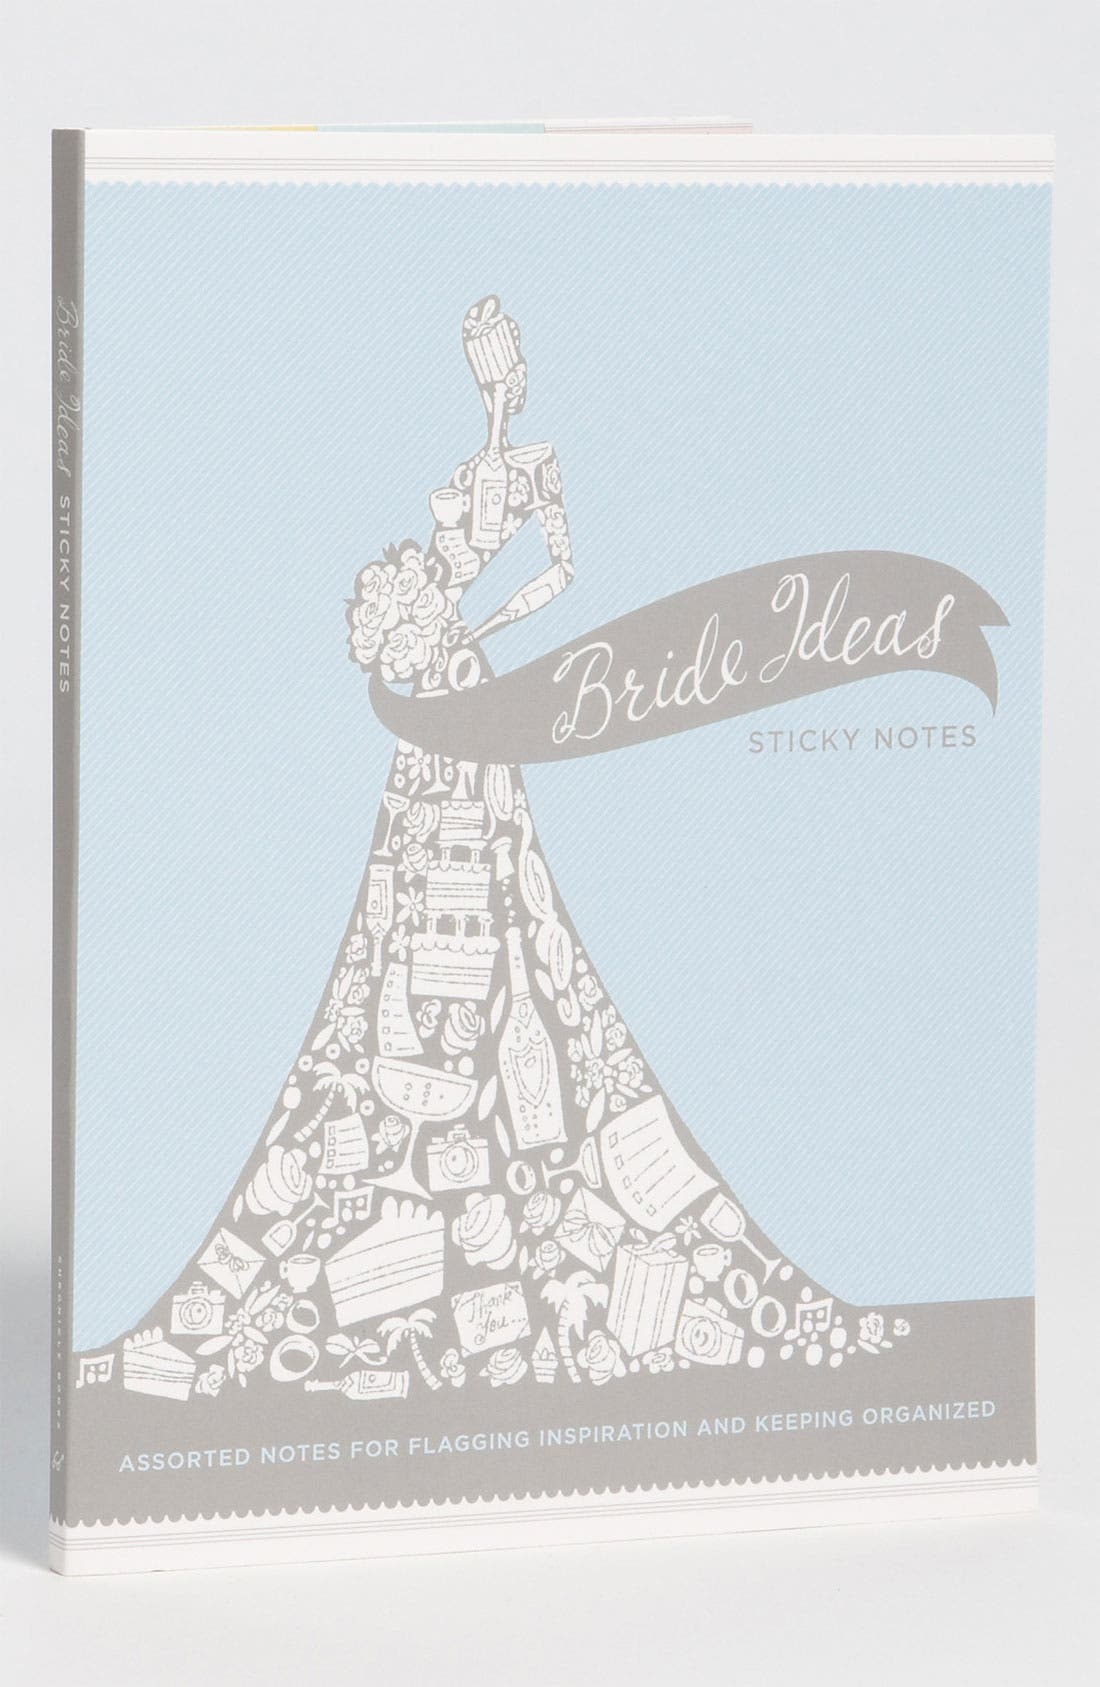 Alternate Image 1 Selected - 'Bride Ideas' Sticky Notes